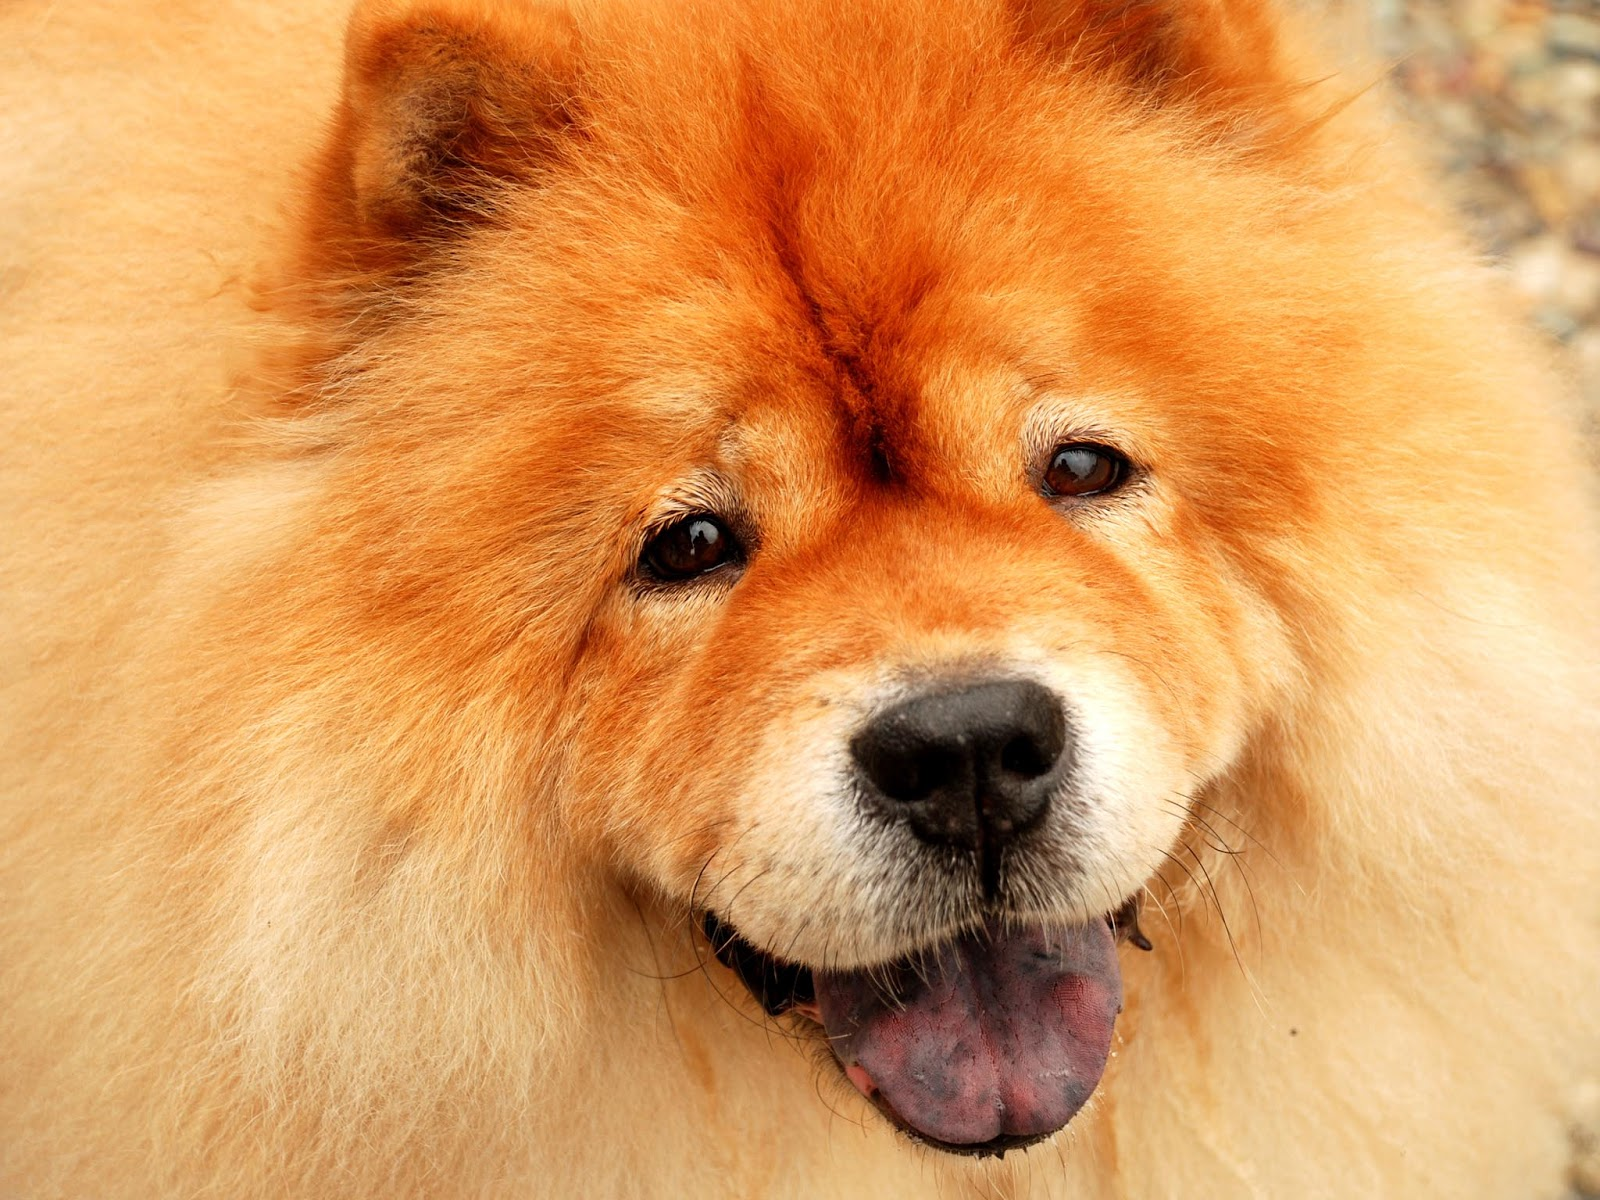 Cute Horse Wallpapers Our Beautiful World Chow Chow Dogs